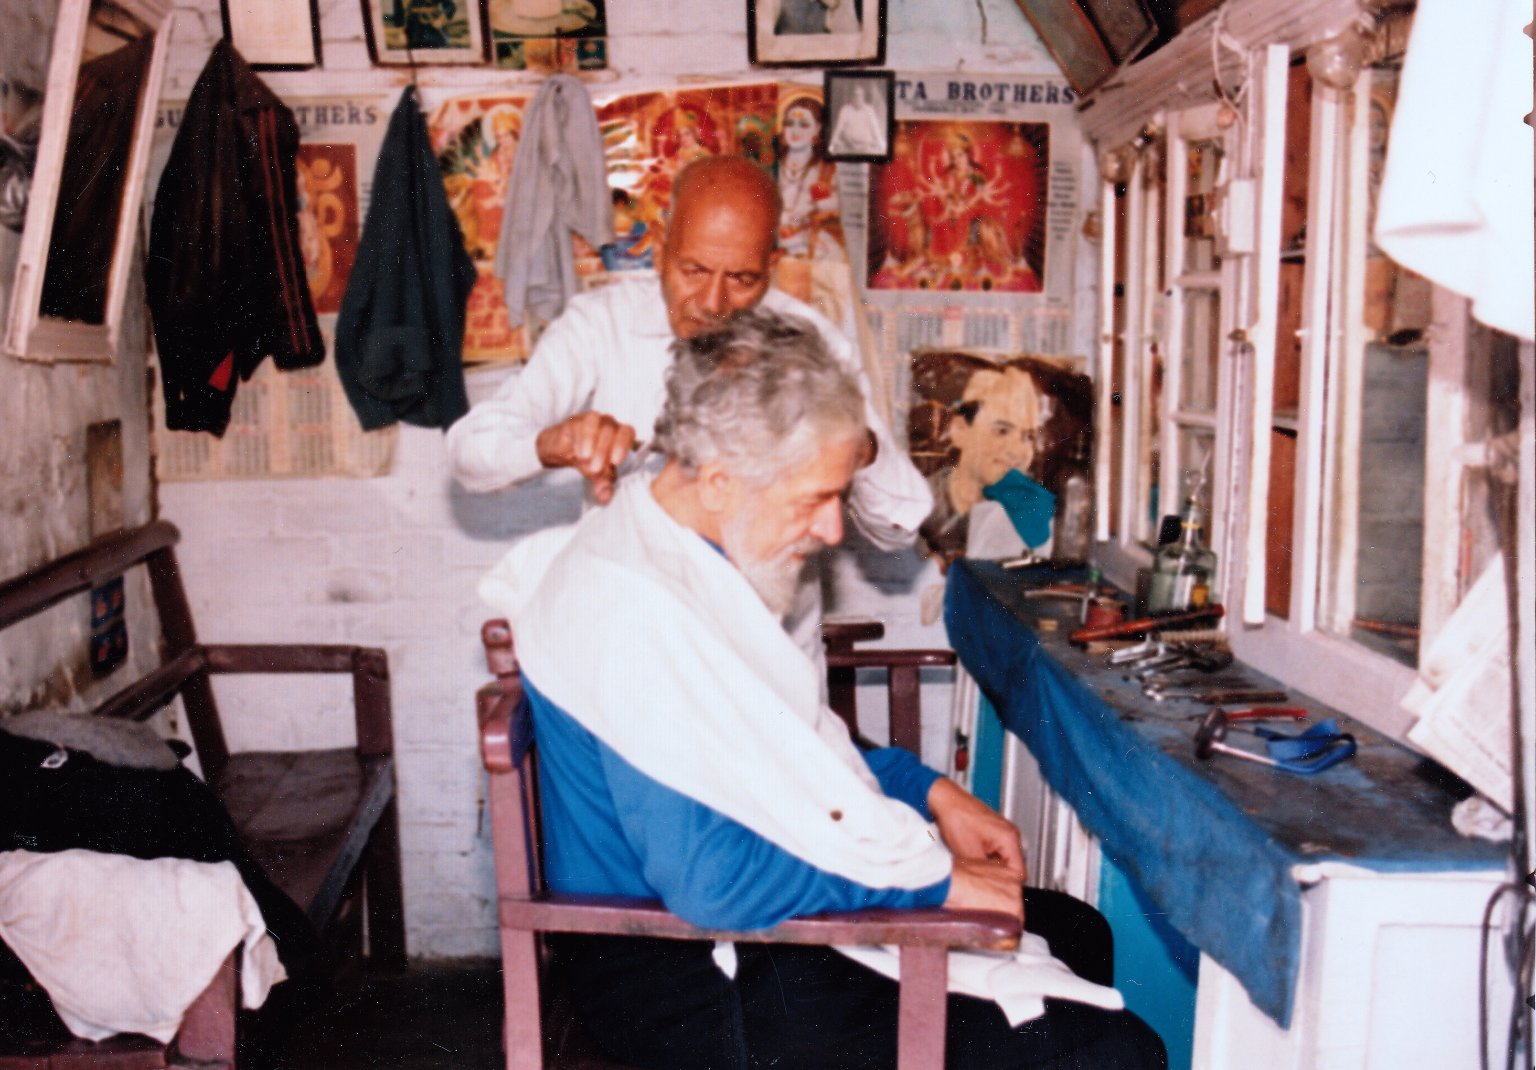 Rabbi Zalman Schachter-Shalomi getting a haircut from a barber in India, Fall 1990.